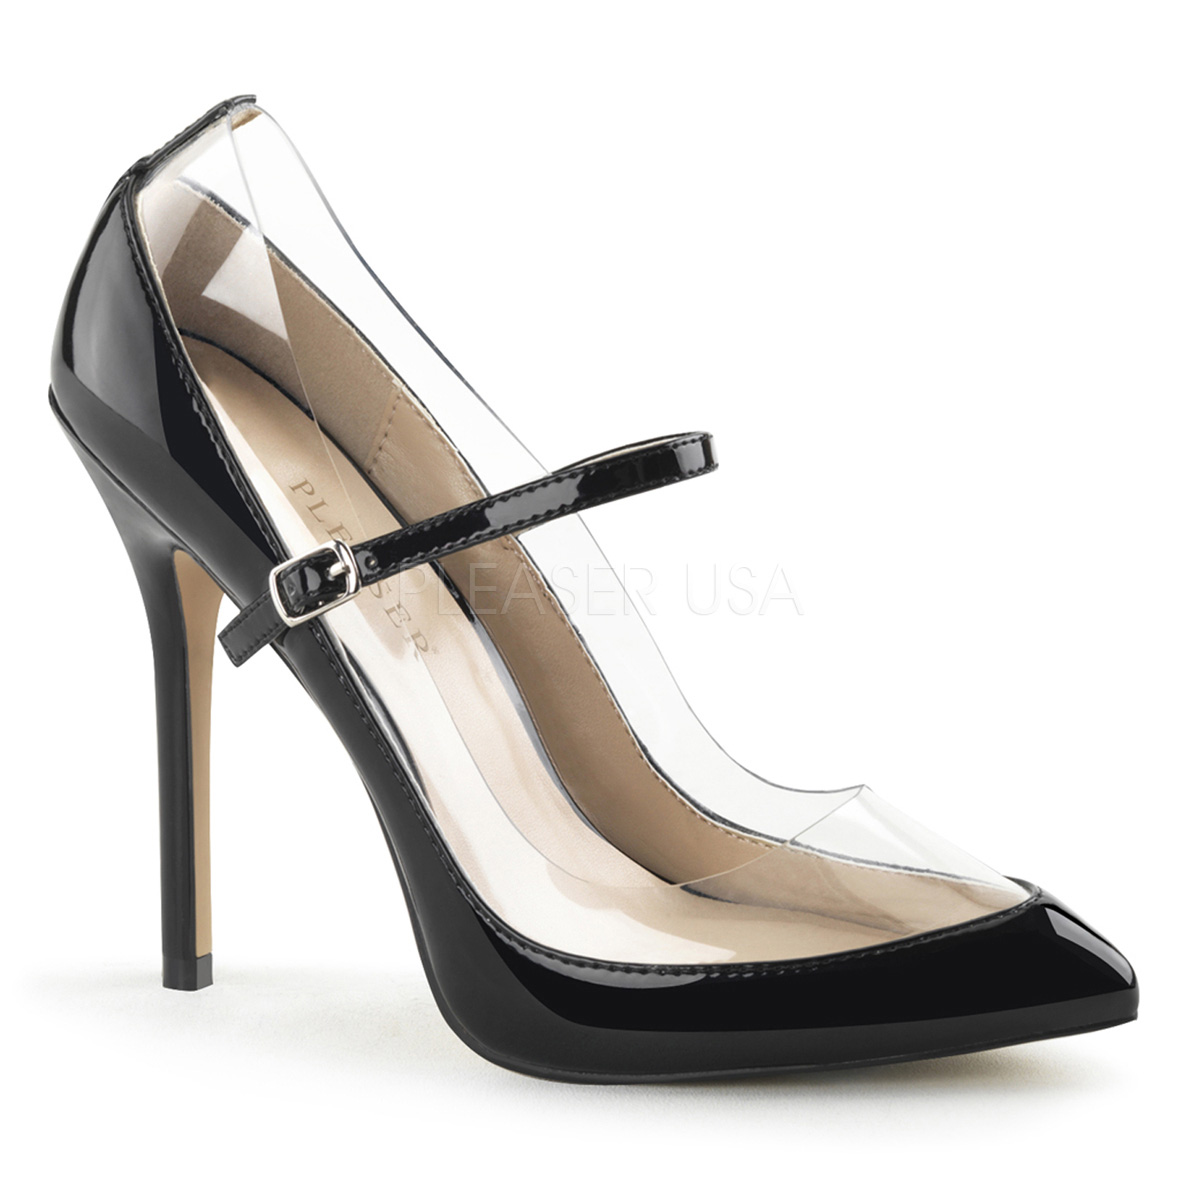 5 Inch Stiletto Heel Transparent Mary Jane Pump